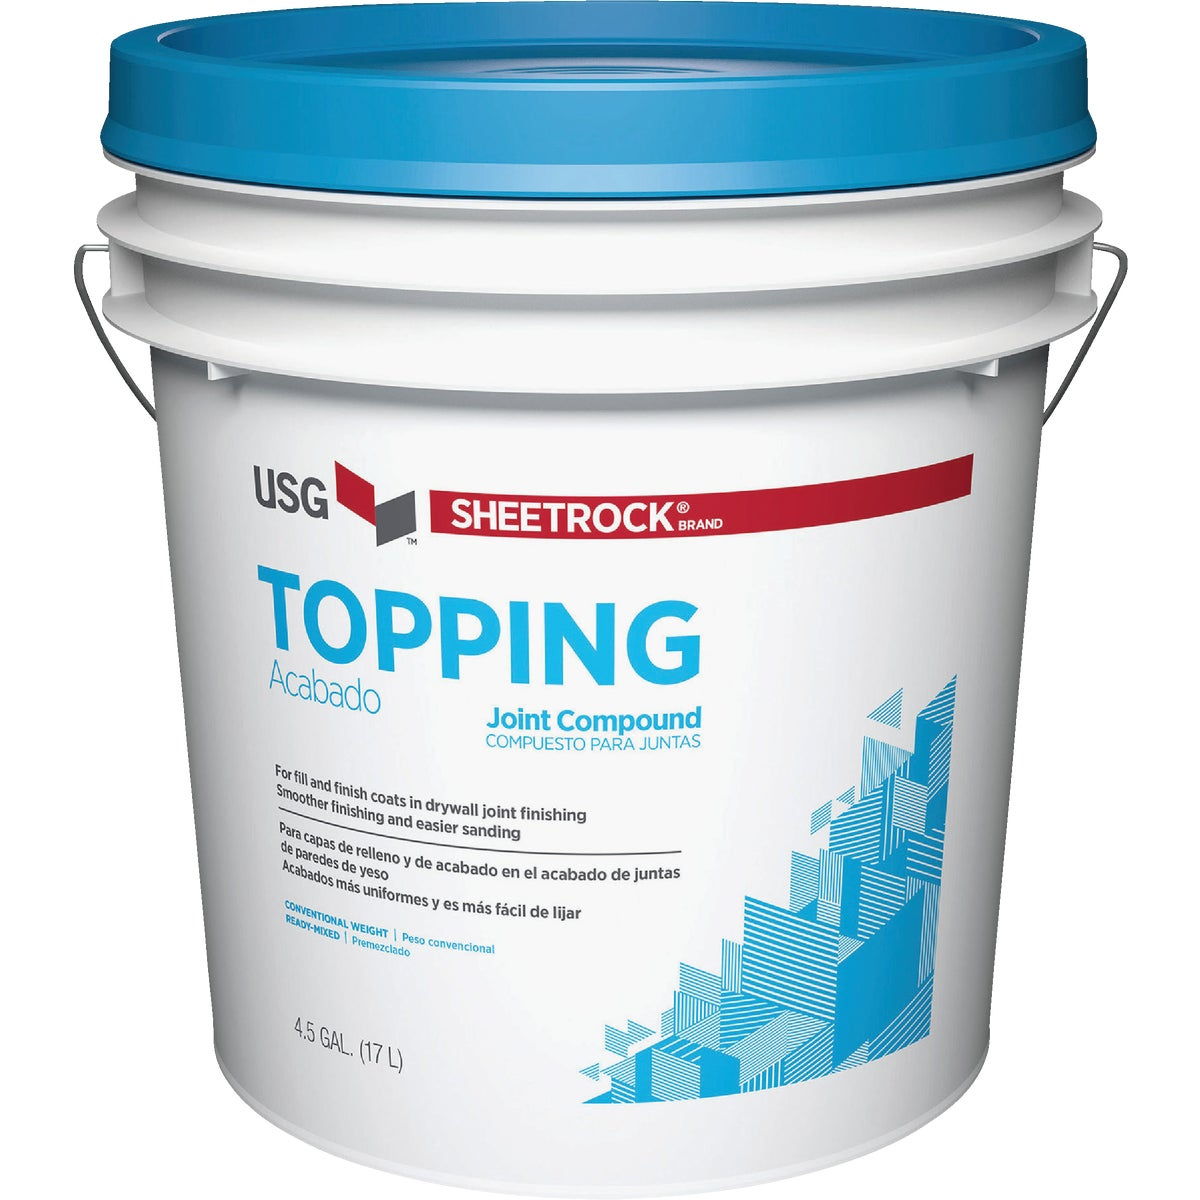 62LB TOP JOINT COMPOUND - 380051-048 by U S Gypsum